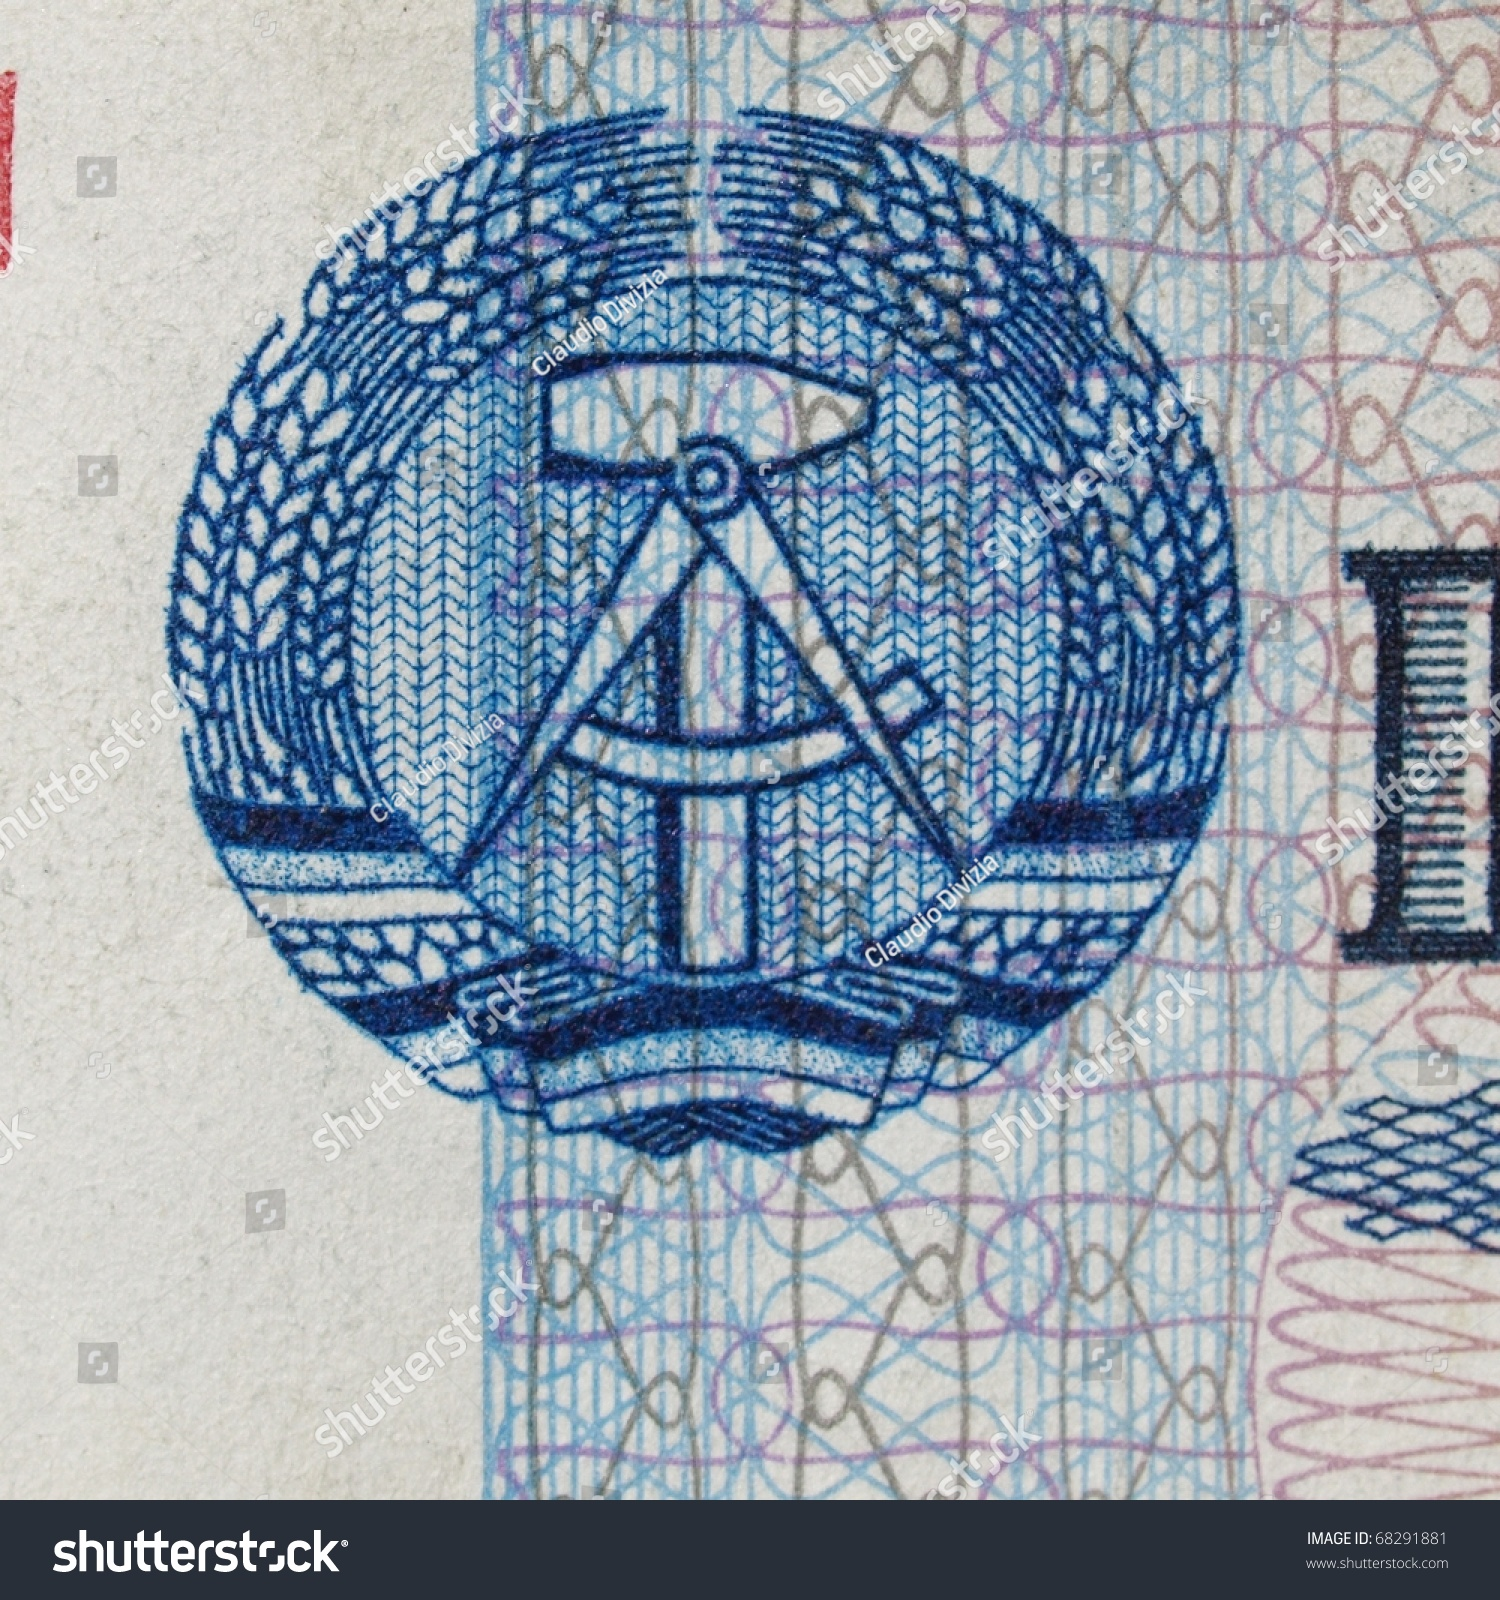 Ddr symbol on 100 mark banknote stock photo 68291881 shutterstock ddr symbol on a 100 mark banknote from east germany note no more in buycottarizona